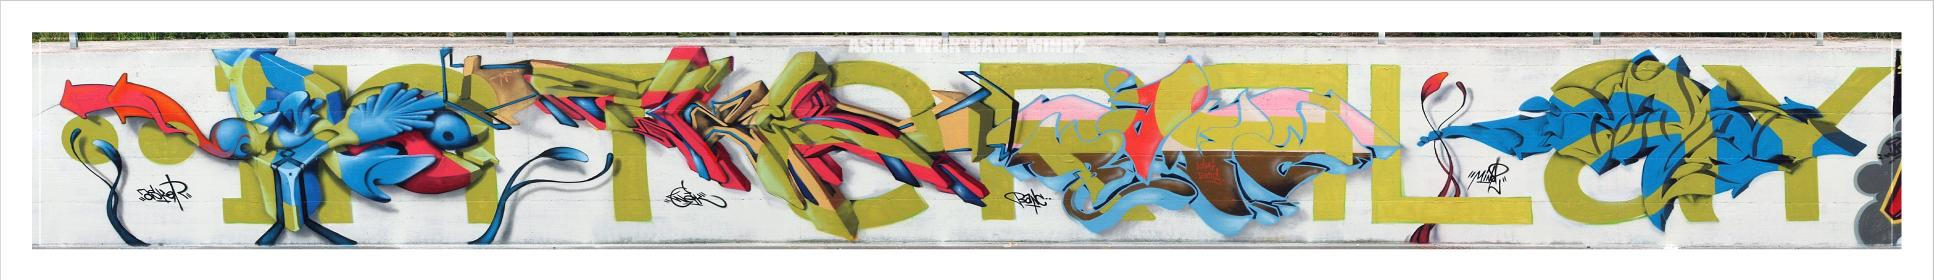 INTERPLAY Crew by Weik